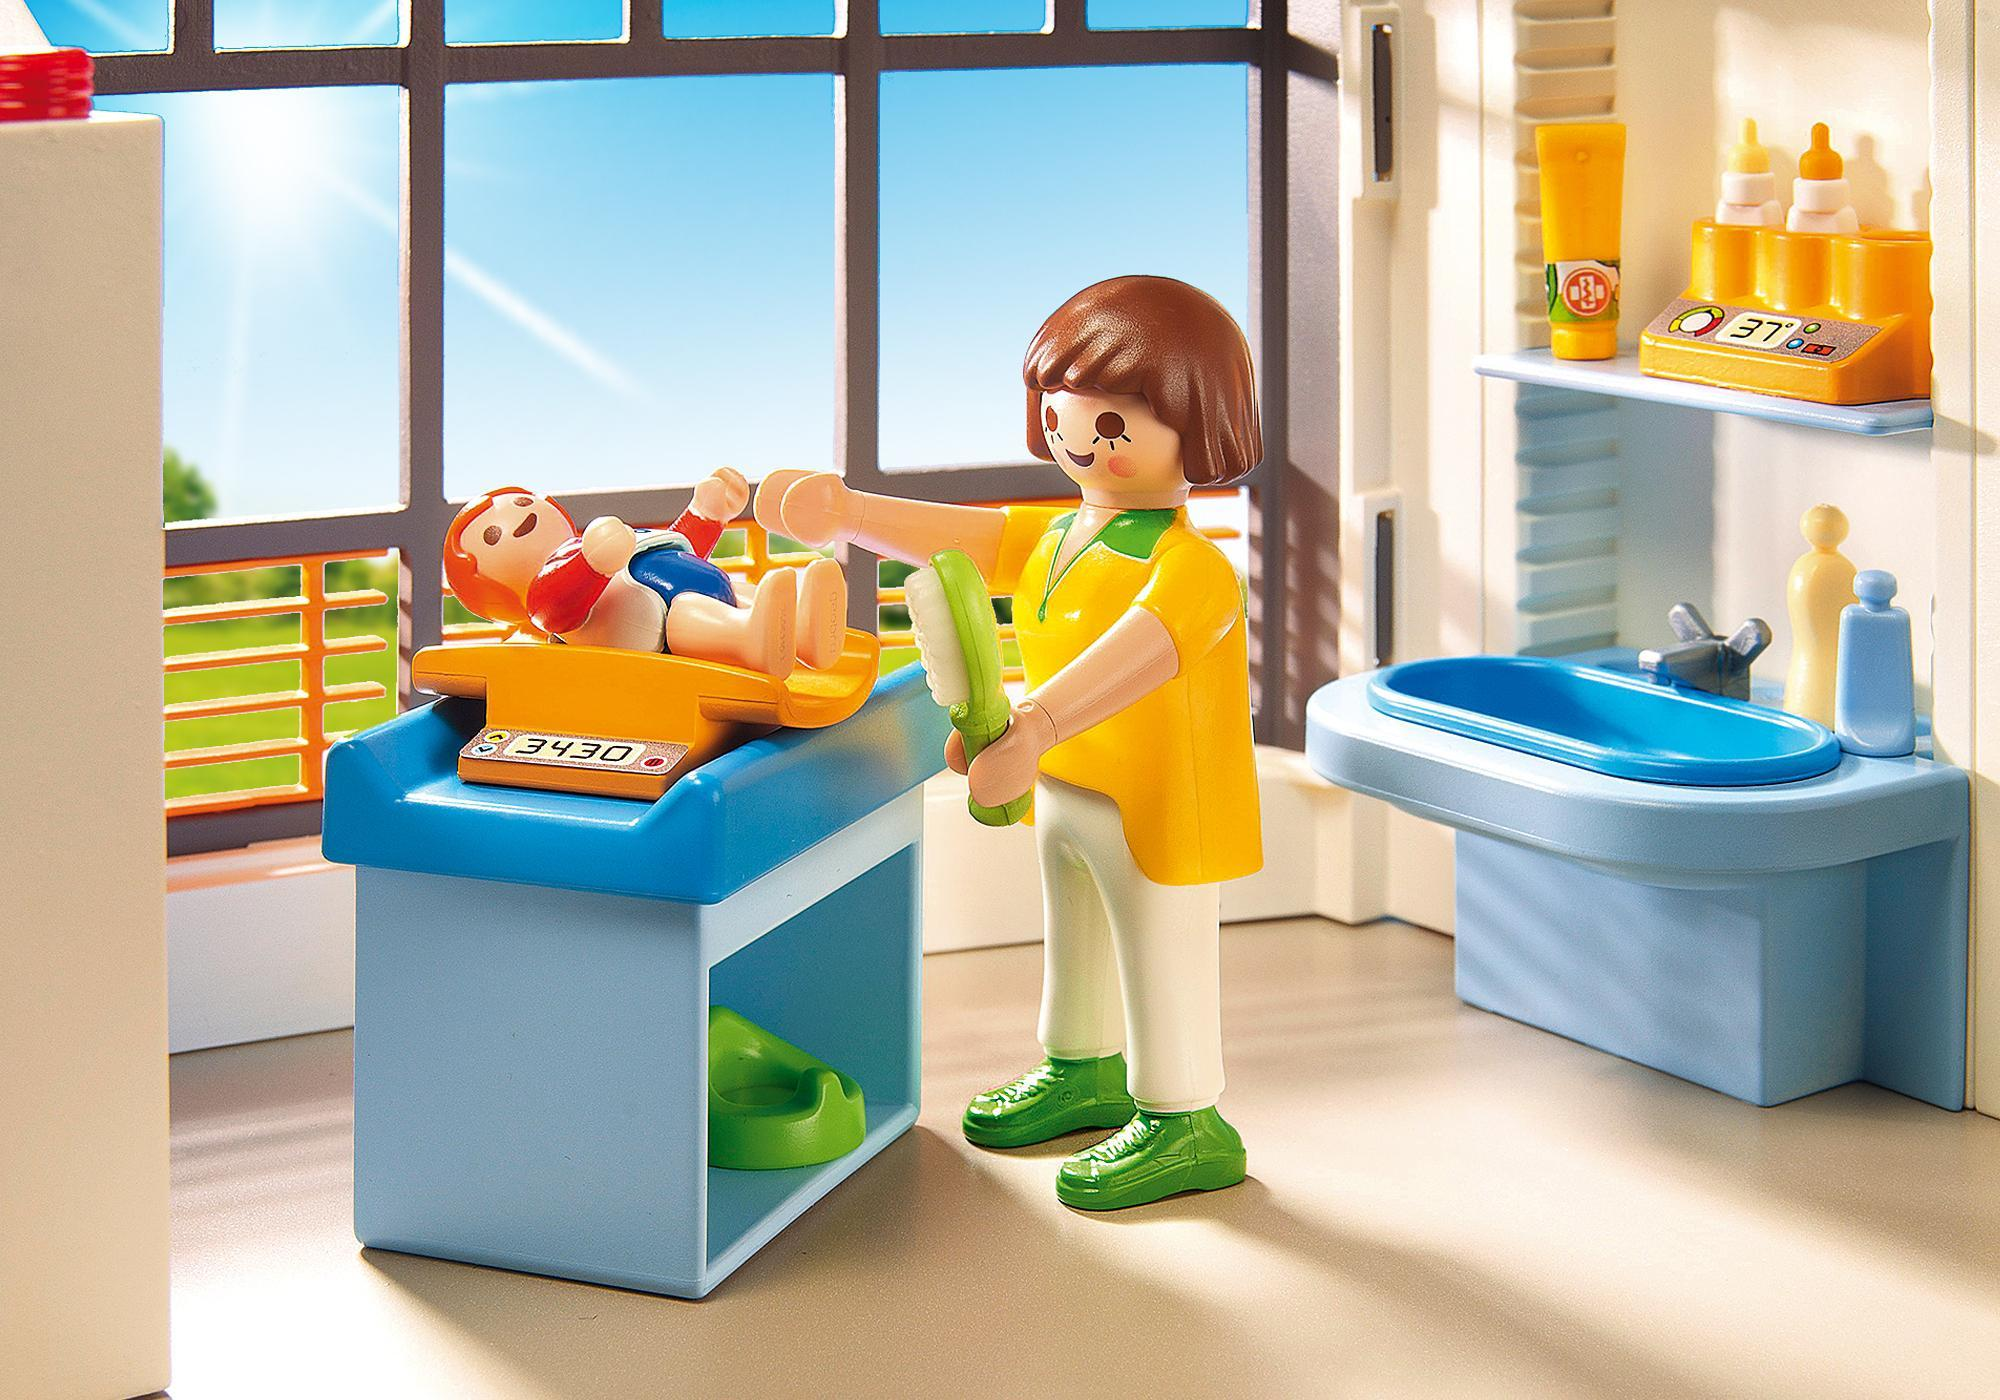 http://media.playmobil.com/i/playmobil/6657_product_extra3